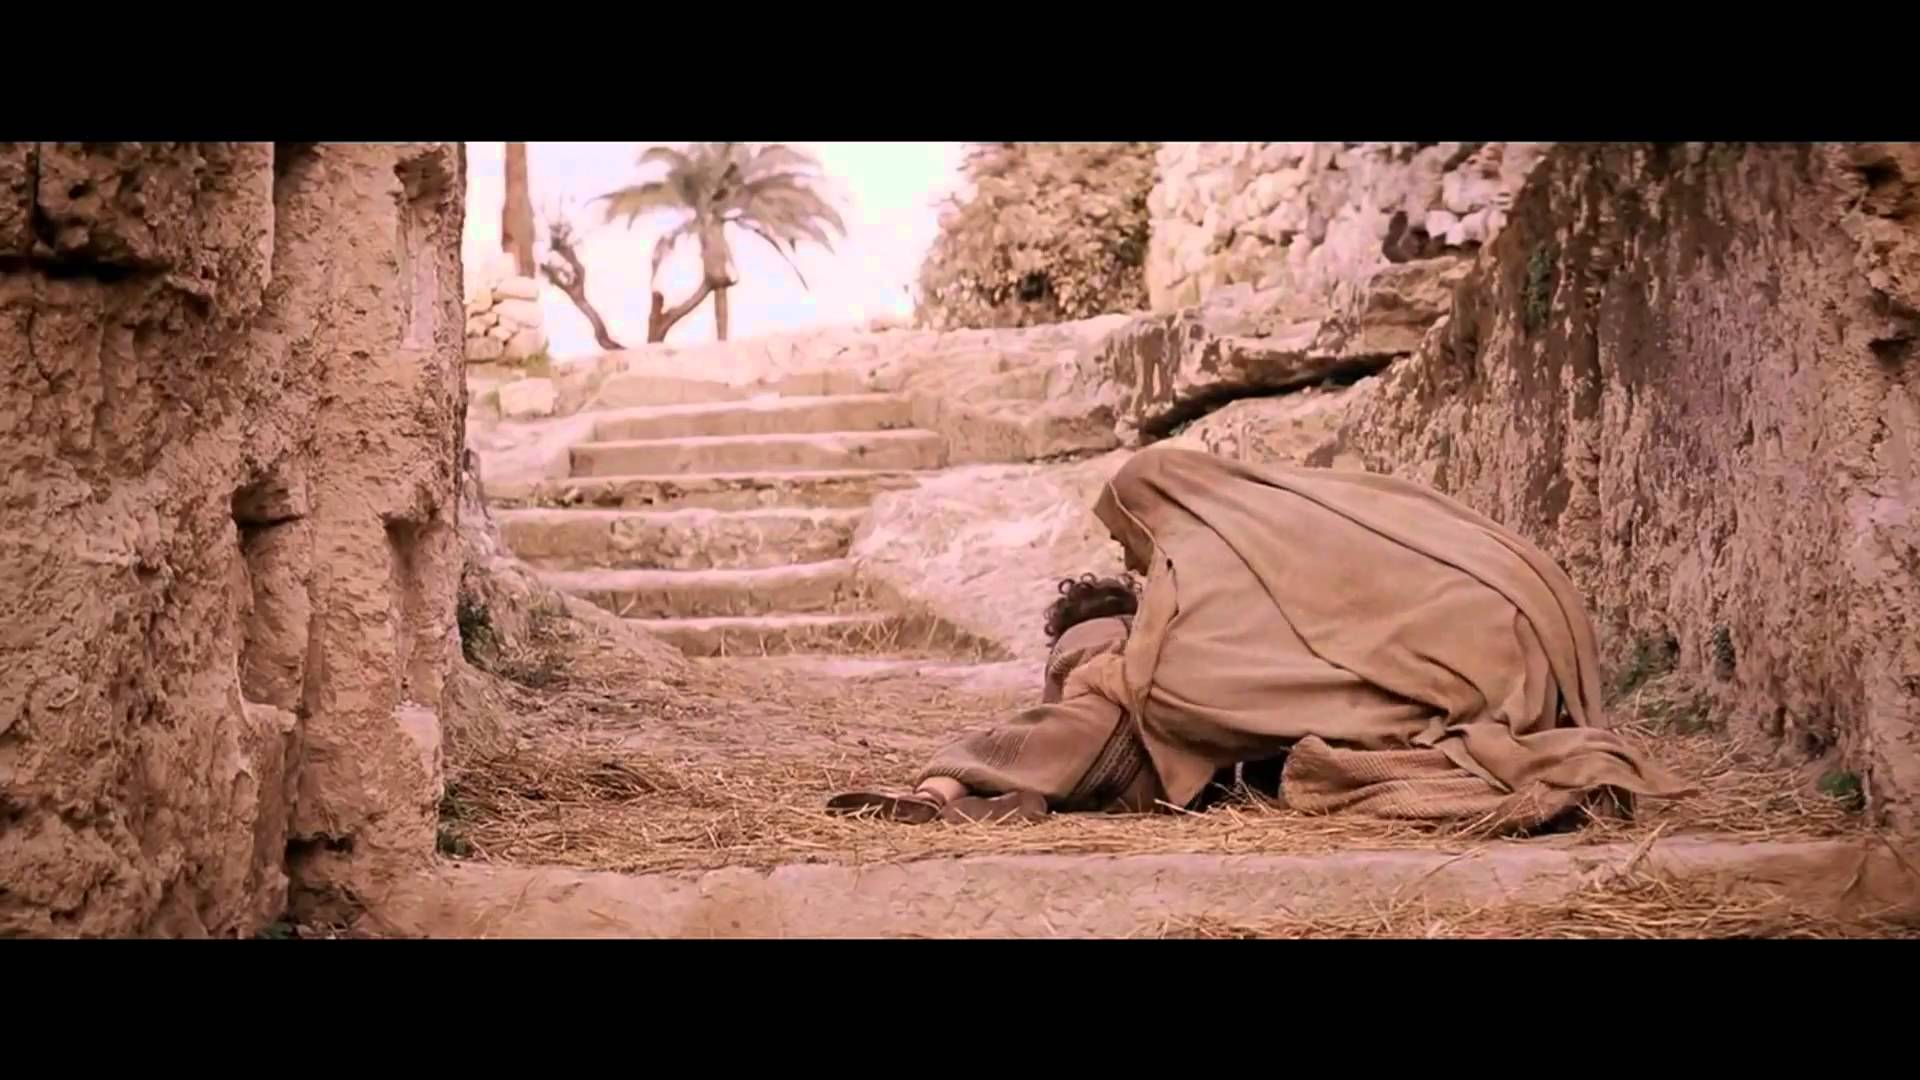 Christian movie: the passion of the christ scene wallpaper.